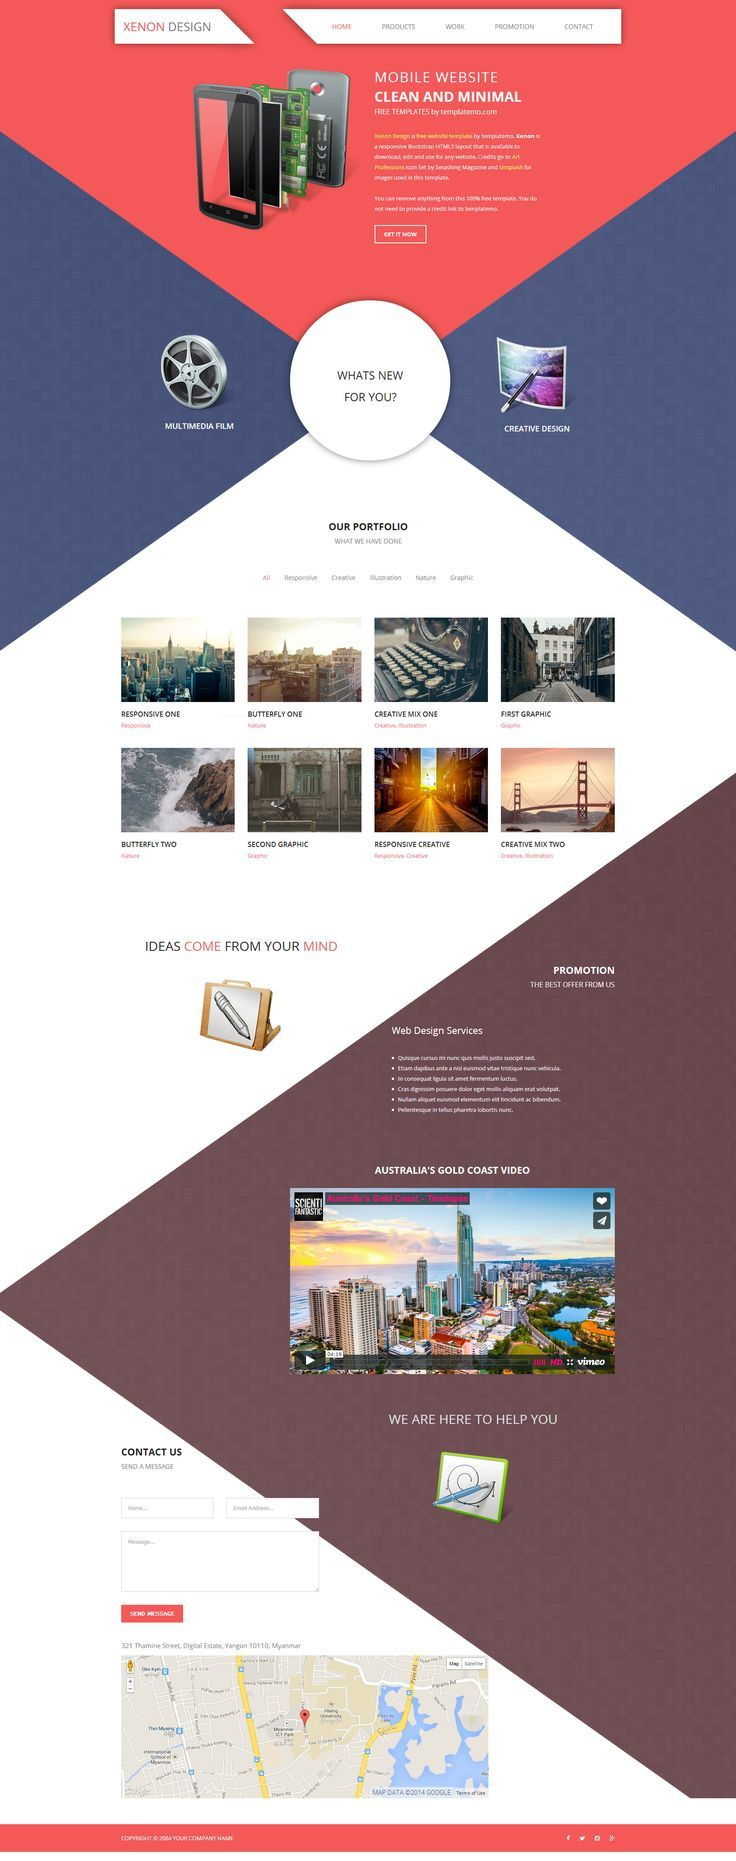 32 best Web Design images on Pinterest | Design websites, Website ...